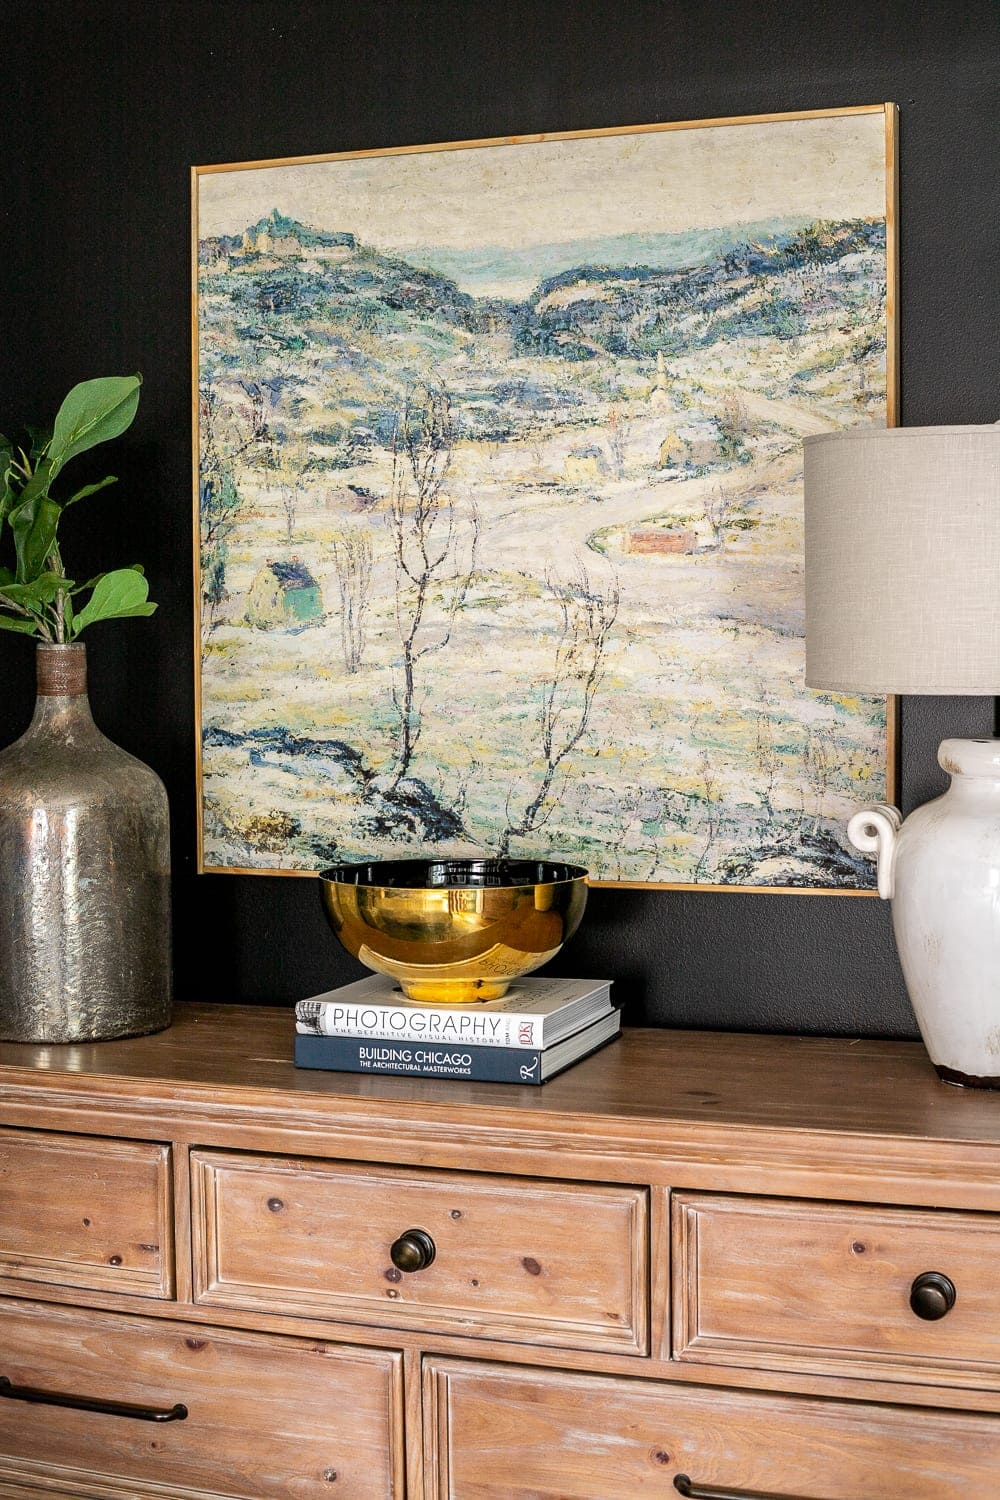 DIY large scale art for under $50